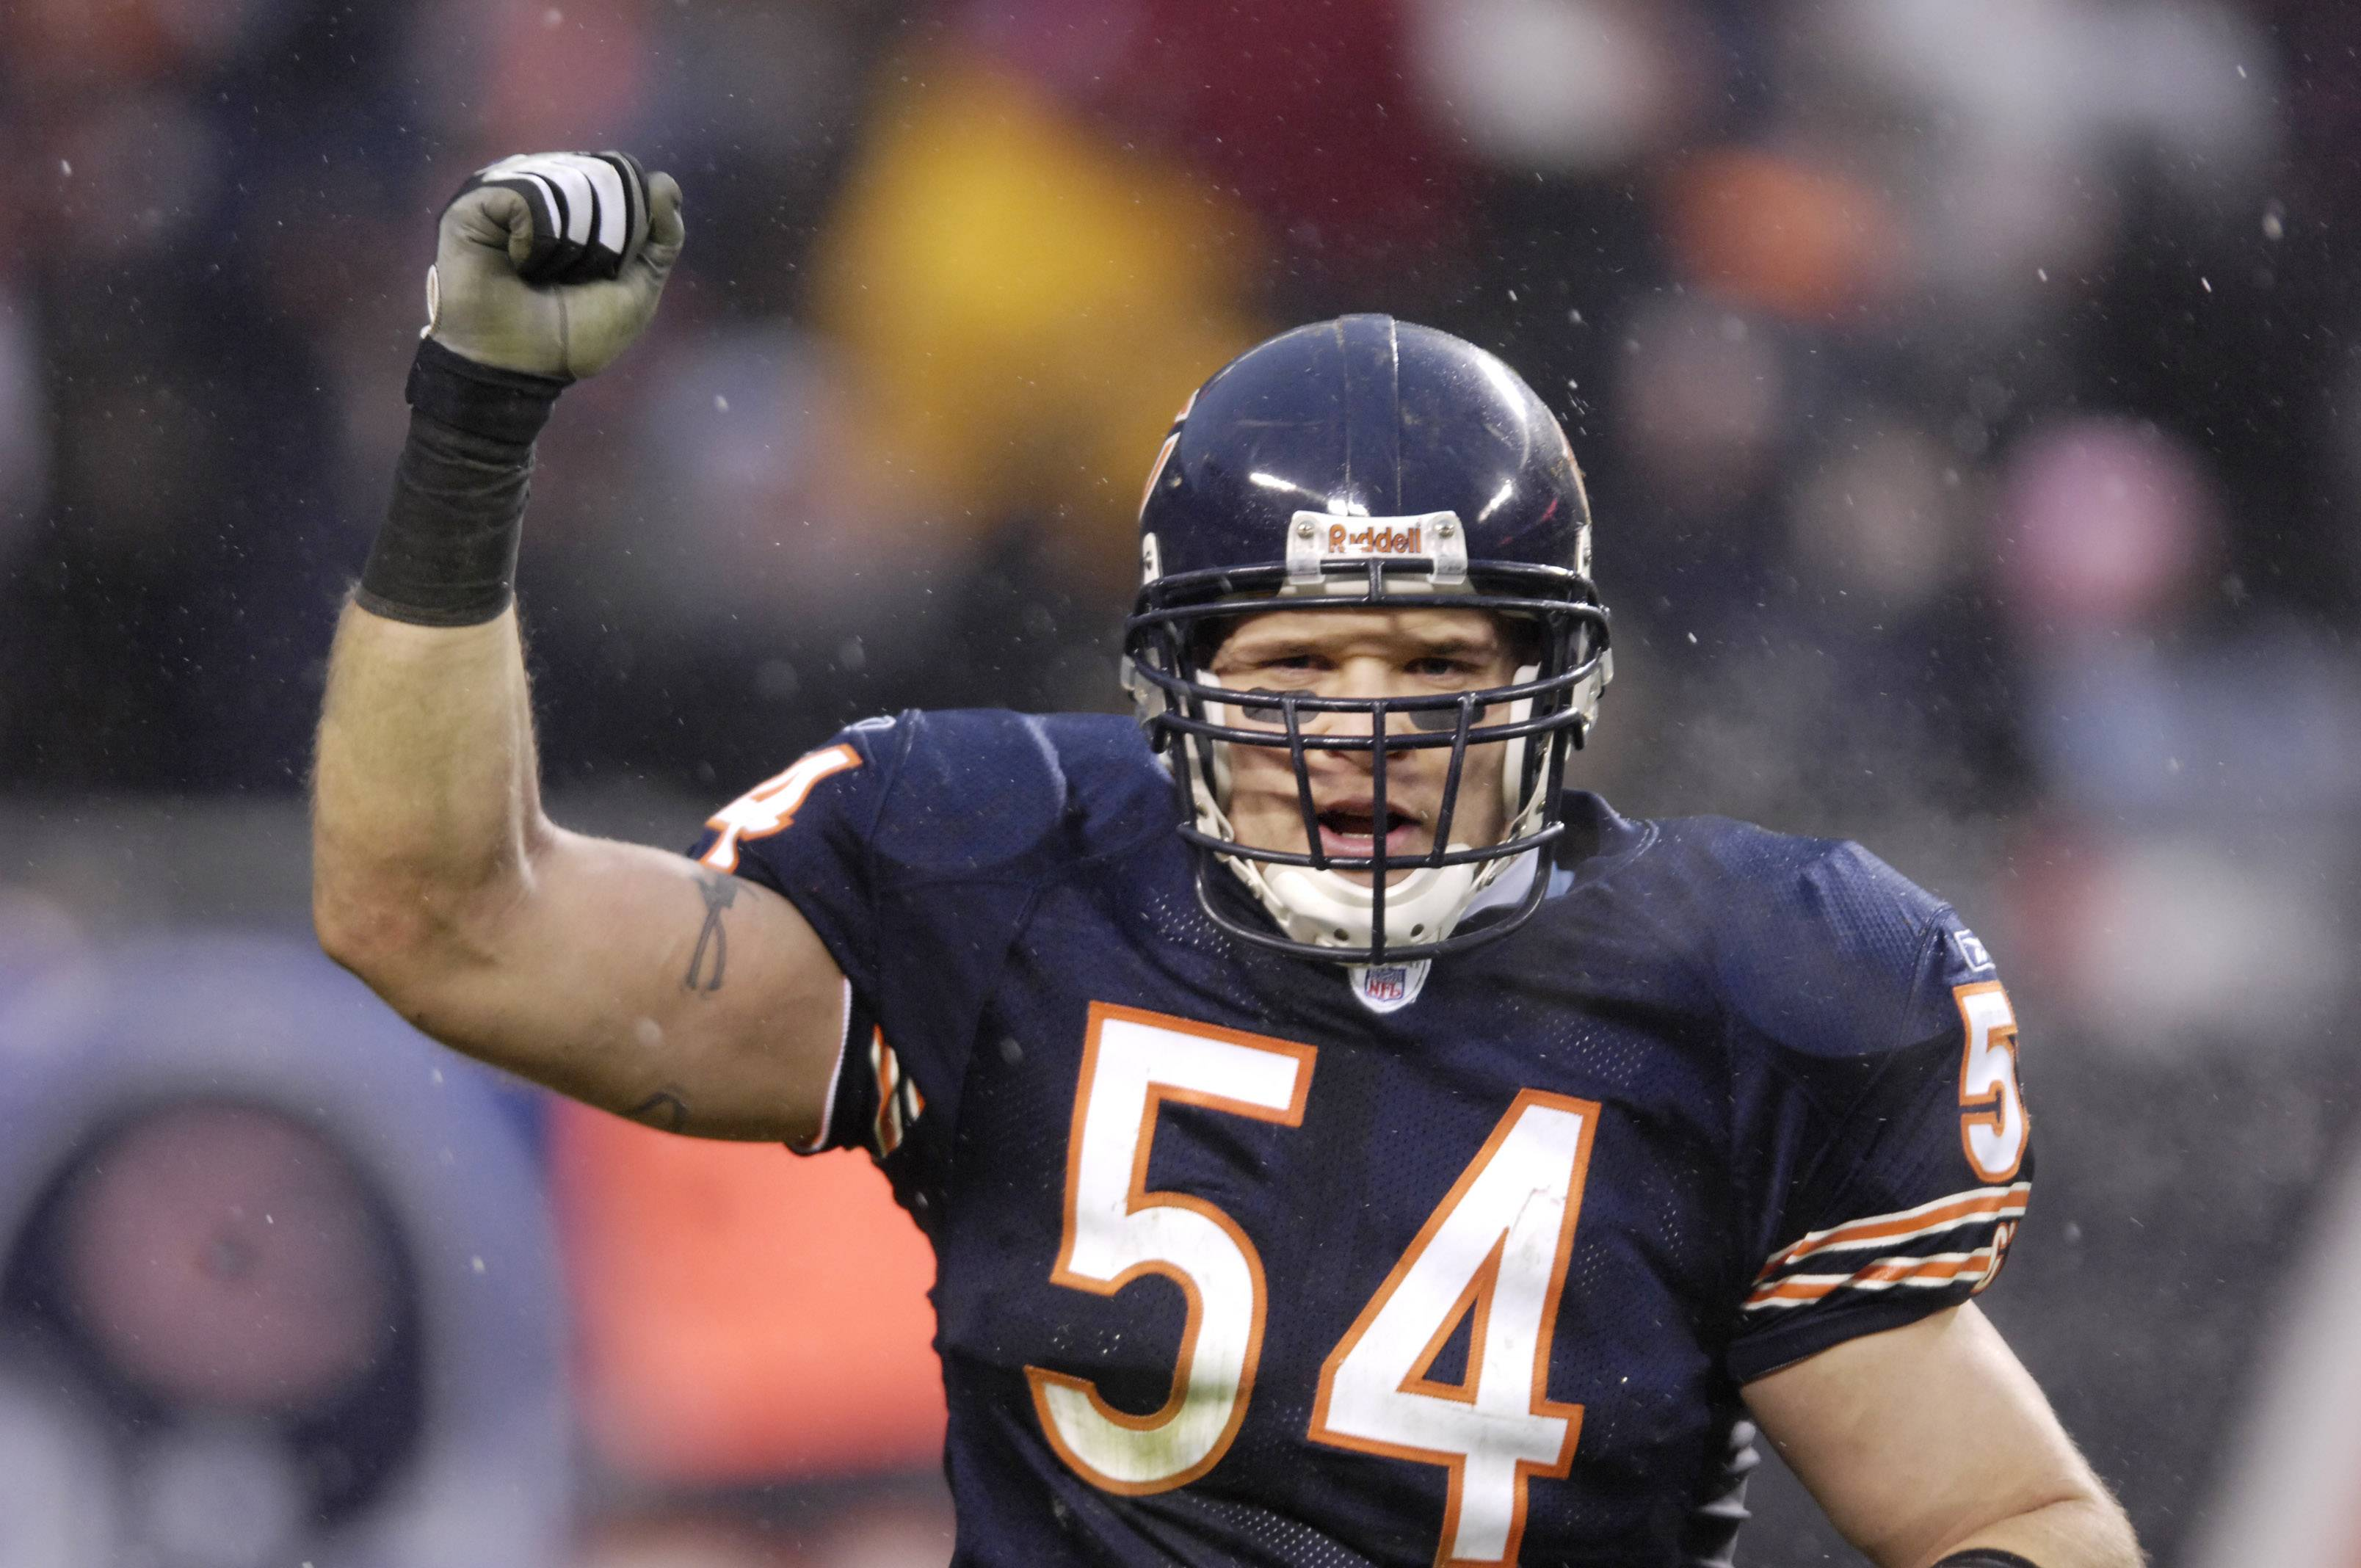 Chicago Bears linebacker Brian Urlacher will be on hand when the Bears play the Baltimore Ravens in the Pro Football Hall of Fame game on Aug. 2 in Canton, Ohio. Urlacher will be inducted into the HOF on Aug. 4 in Canton.